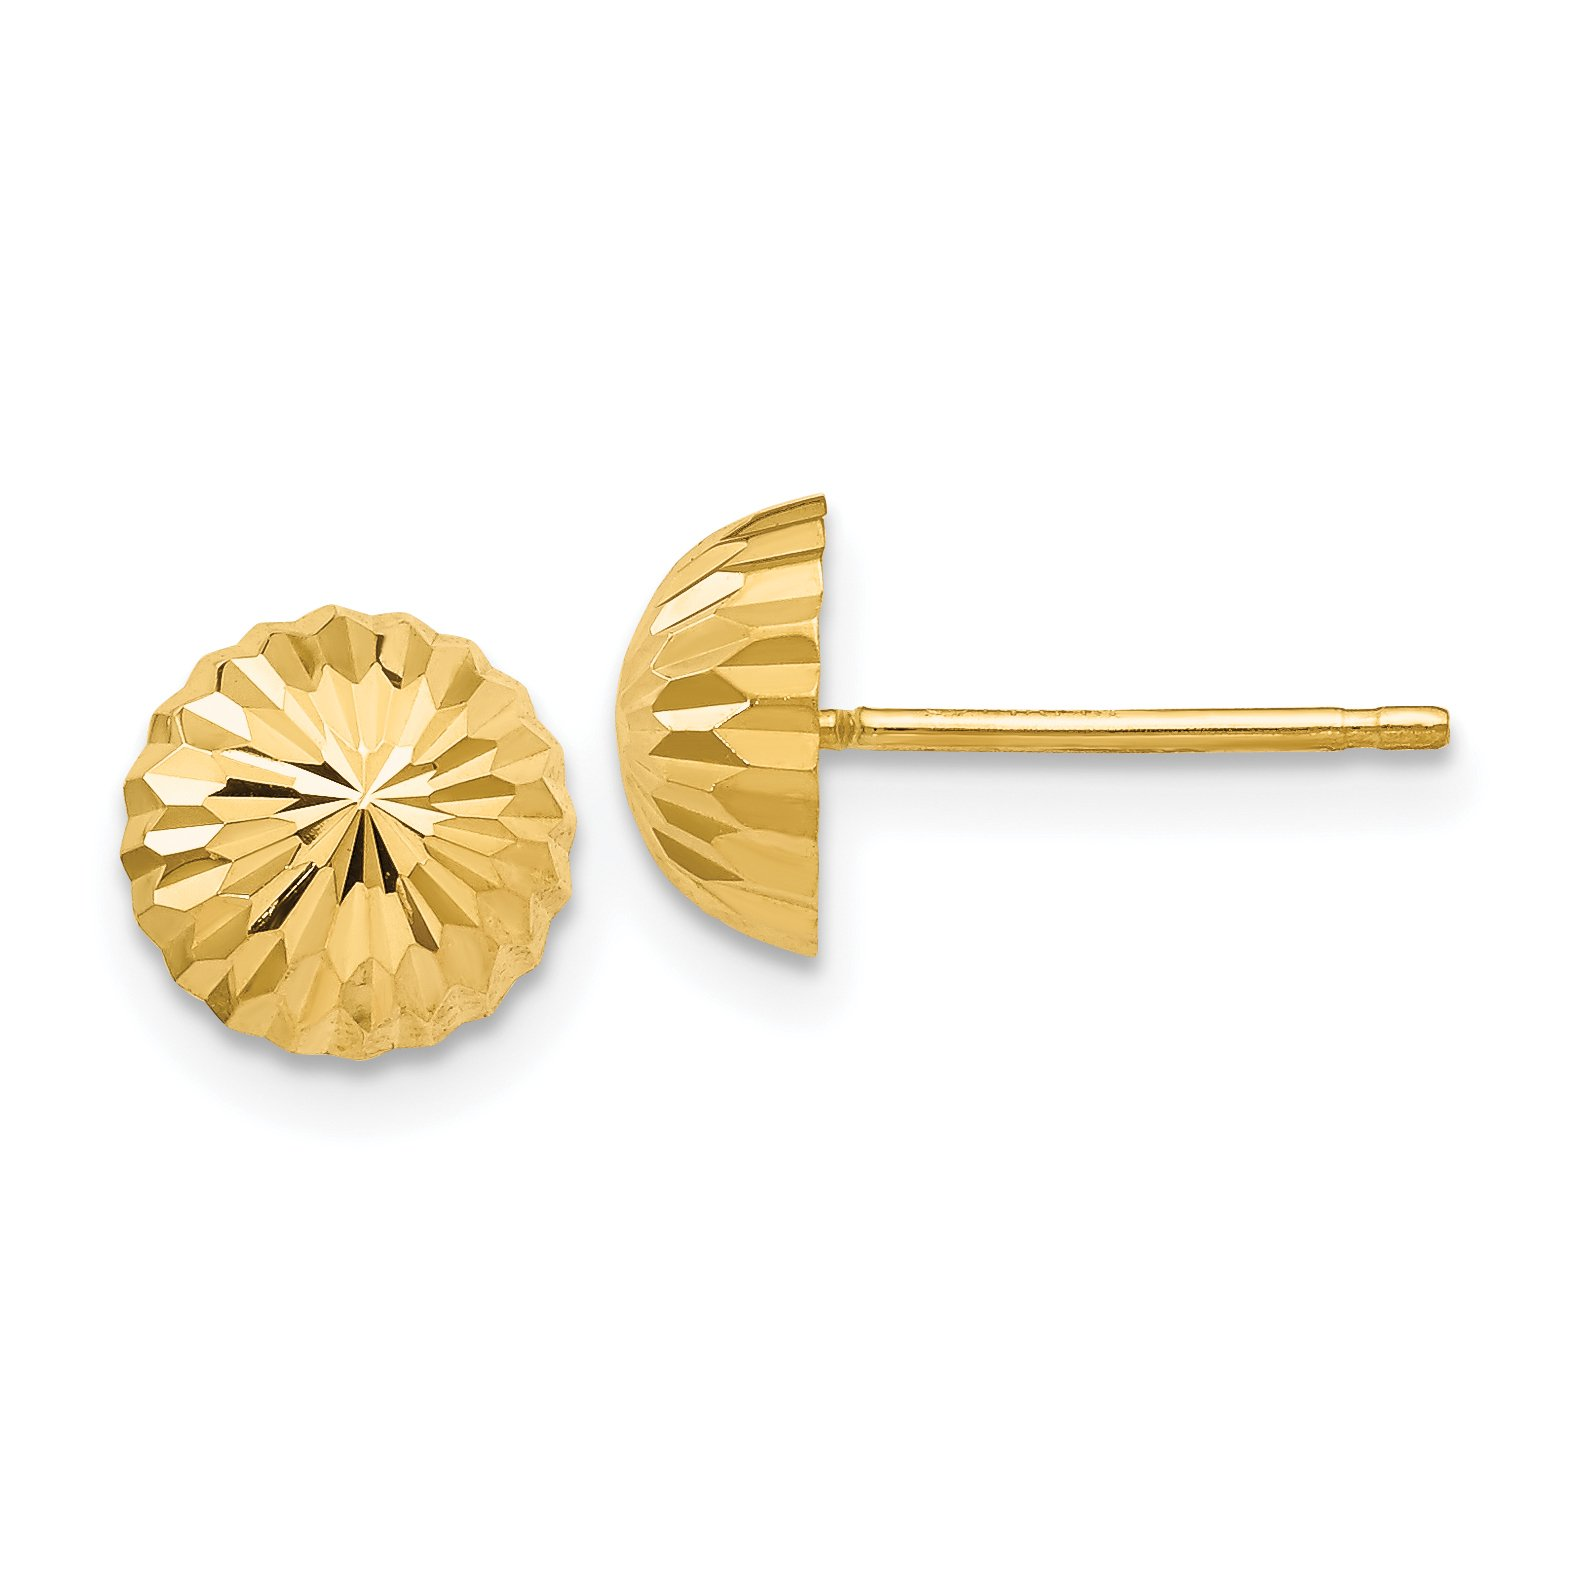 ICE CARATS 14k Yellow Gold 8mm Domed Post Stud Ball Button Earrings Fine Jewelry Gift Set For Women Heart